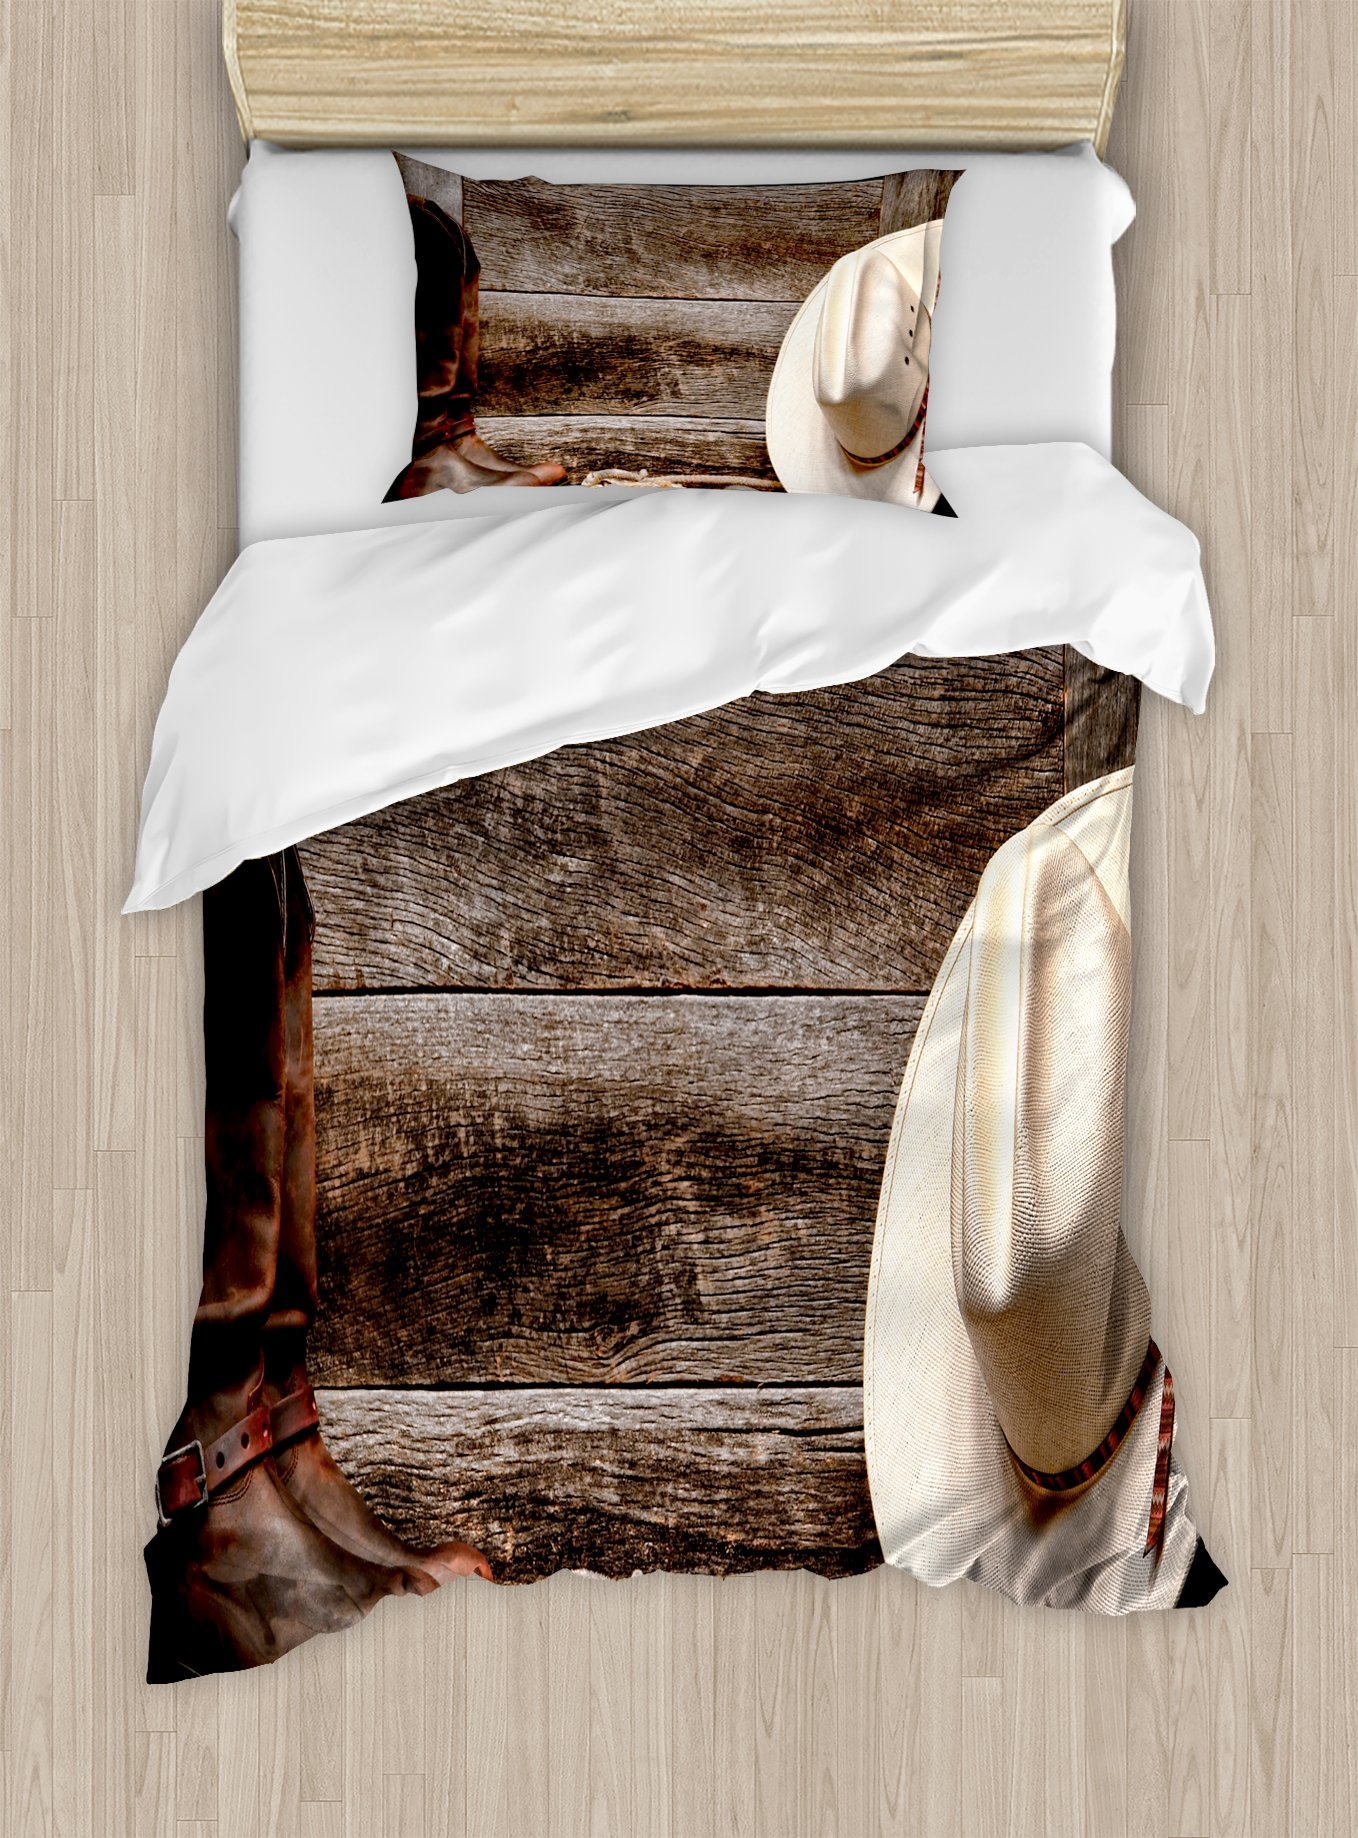 Western Decor Duvet Cover Set by Ambesonne, American West Rodeo White Straw Cowboy Hat with Lariat Leather Boots on Rustic Barn Wood, 2 Piece Bedding Set with 1 Pillow Sham, Twin / Twin XL Size